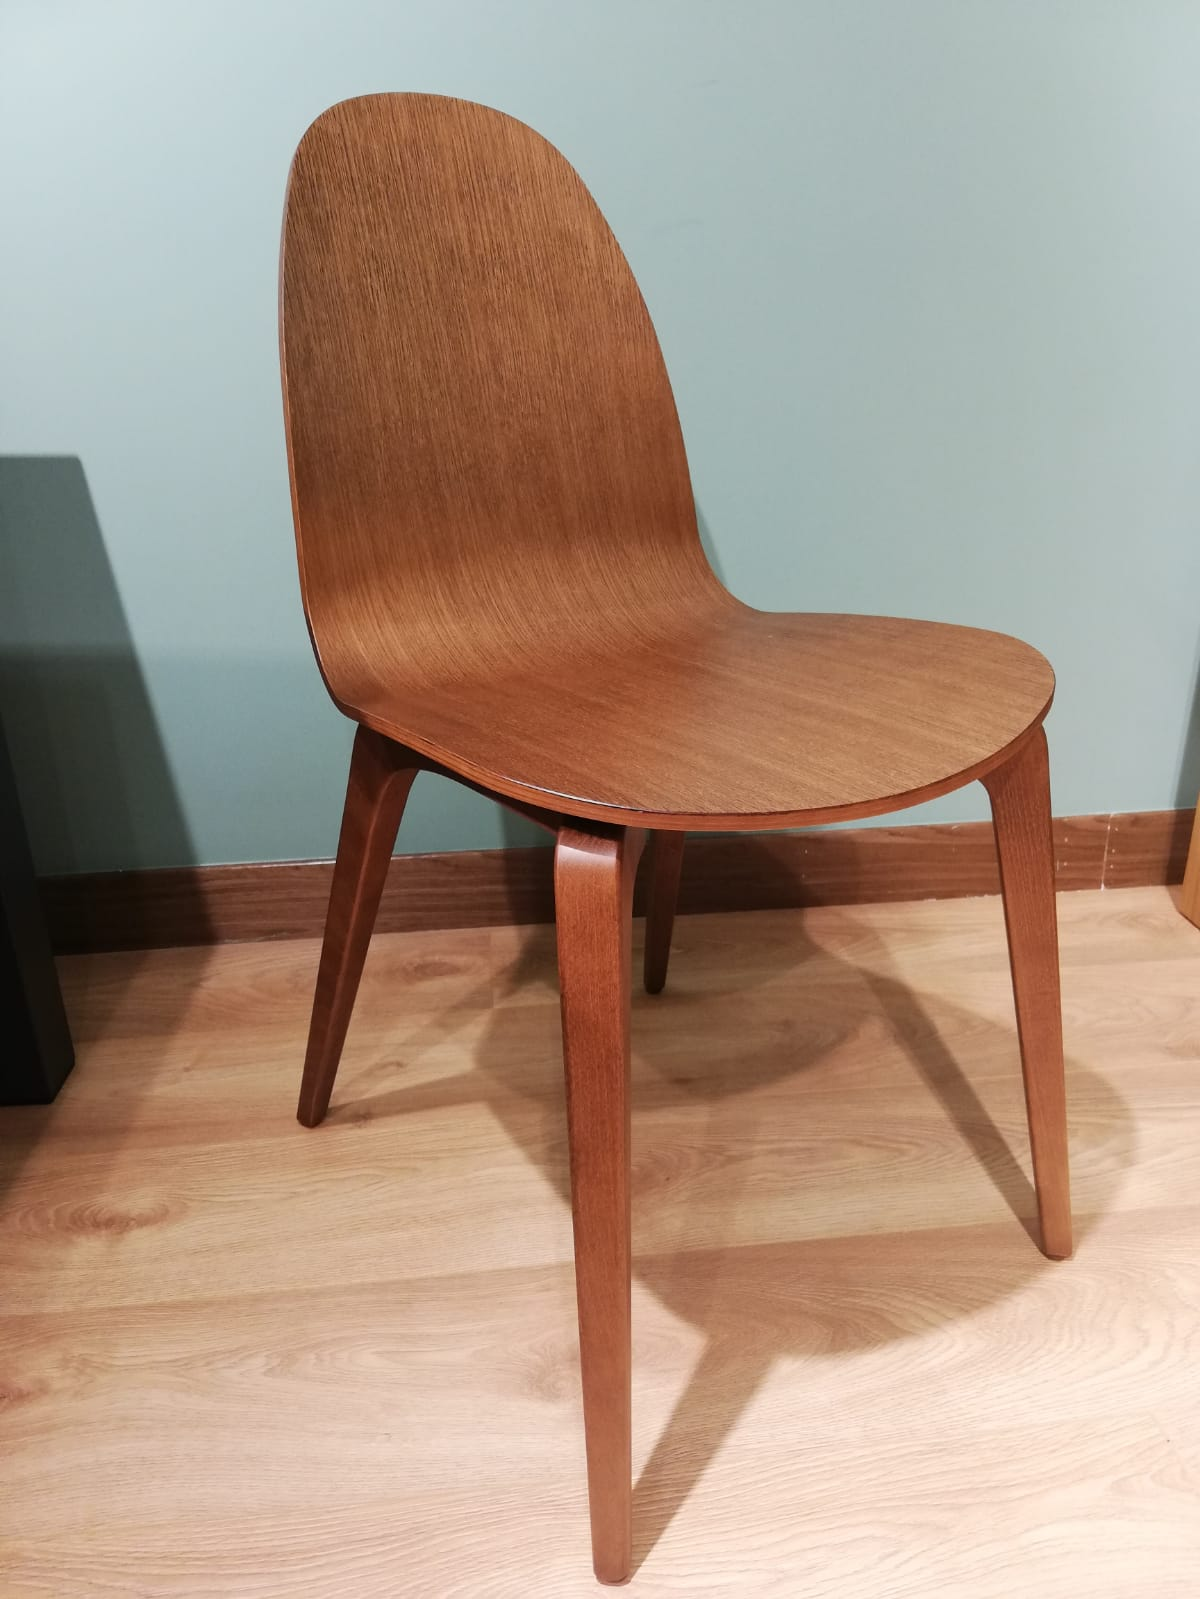 Bob Chair - Stained Oak Seat with Solid Wood Frame